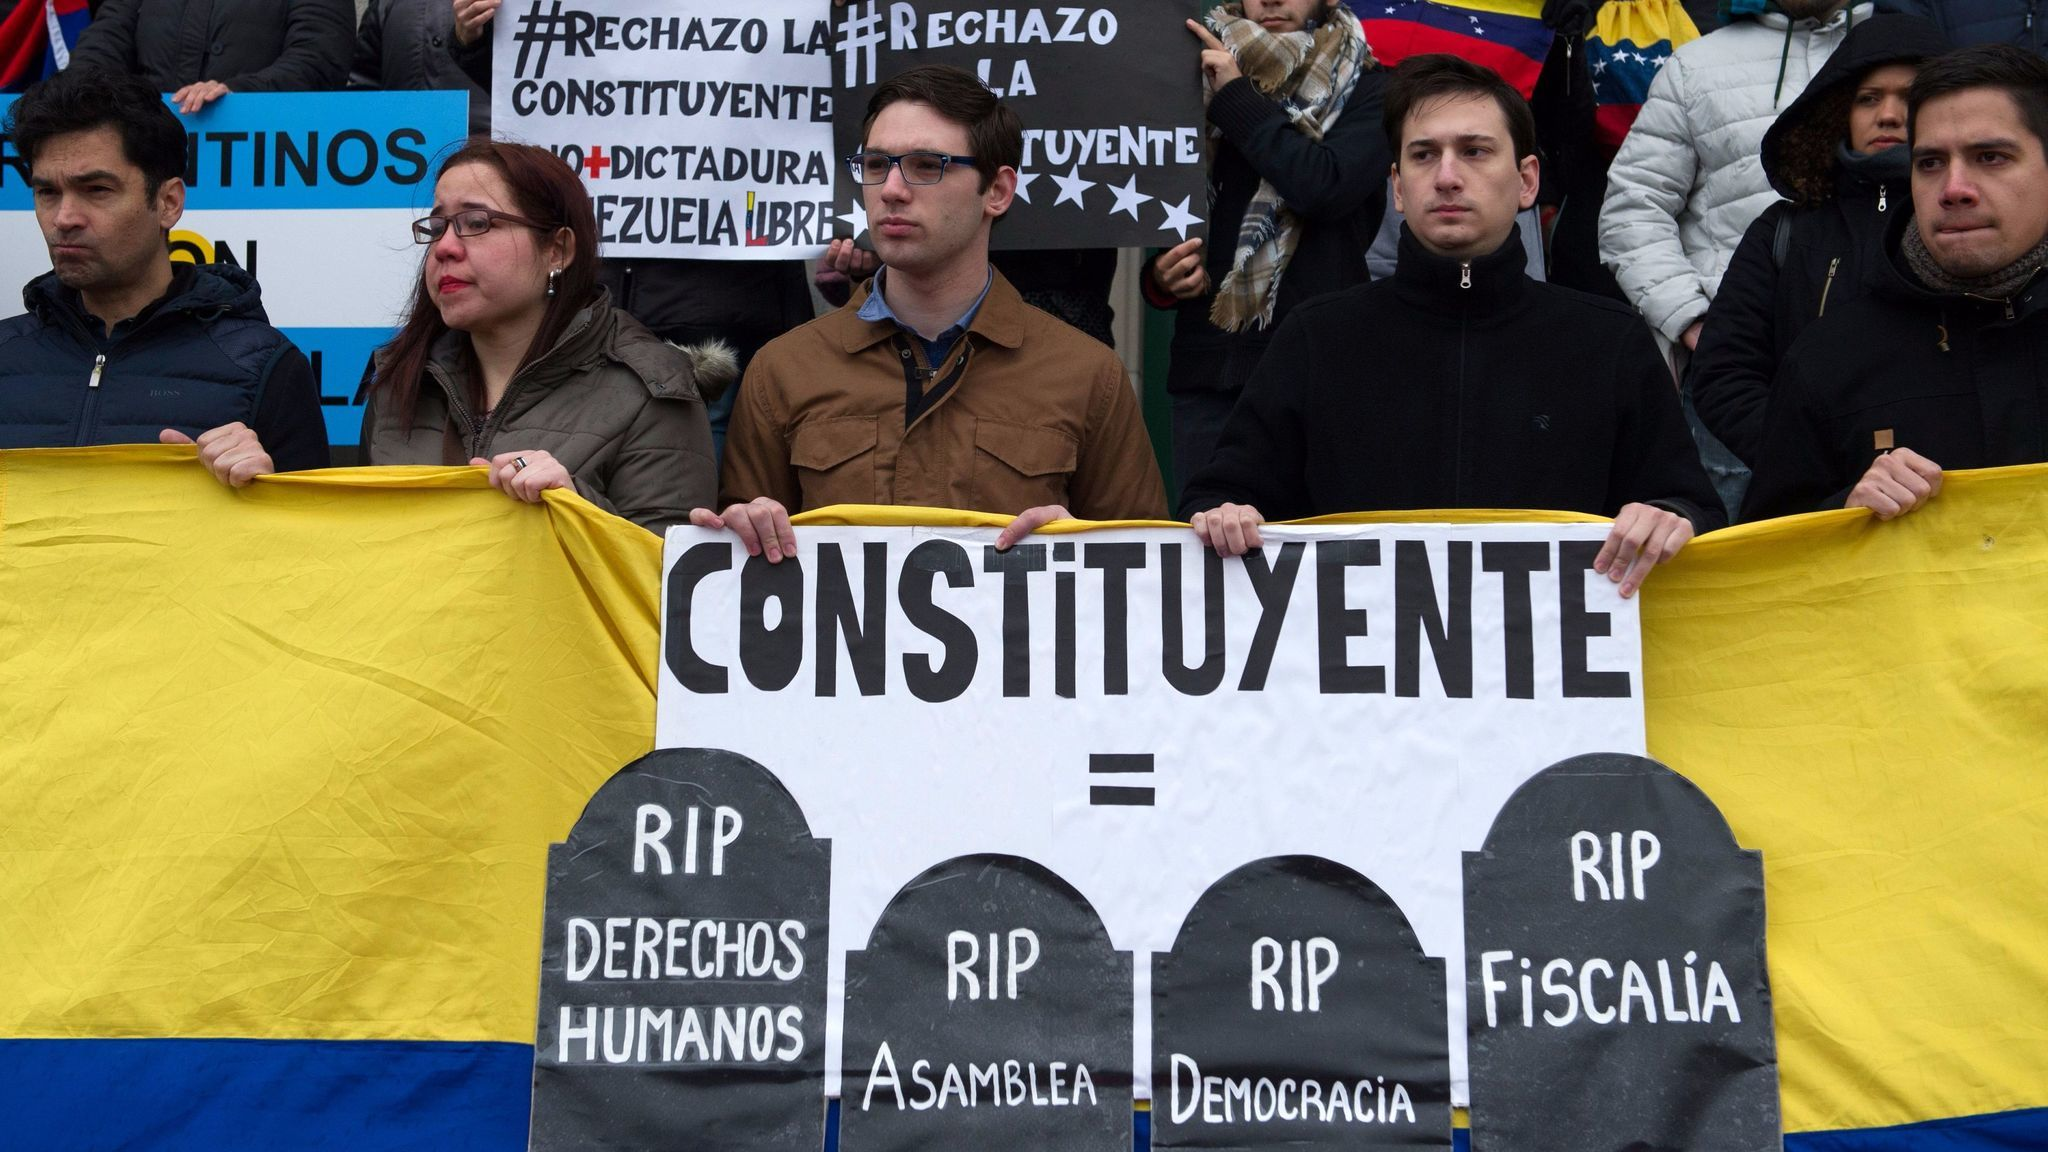 Venezuelans in Argentina gathered in Buenos Aires in July to protest the election for a Constituent Assembly back home. Critics said assembly was a sham intended to enhance the power of President Nicolas Maduro.